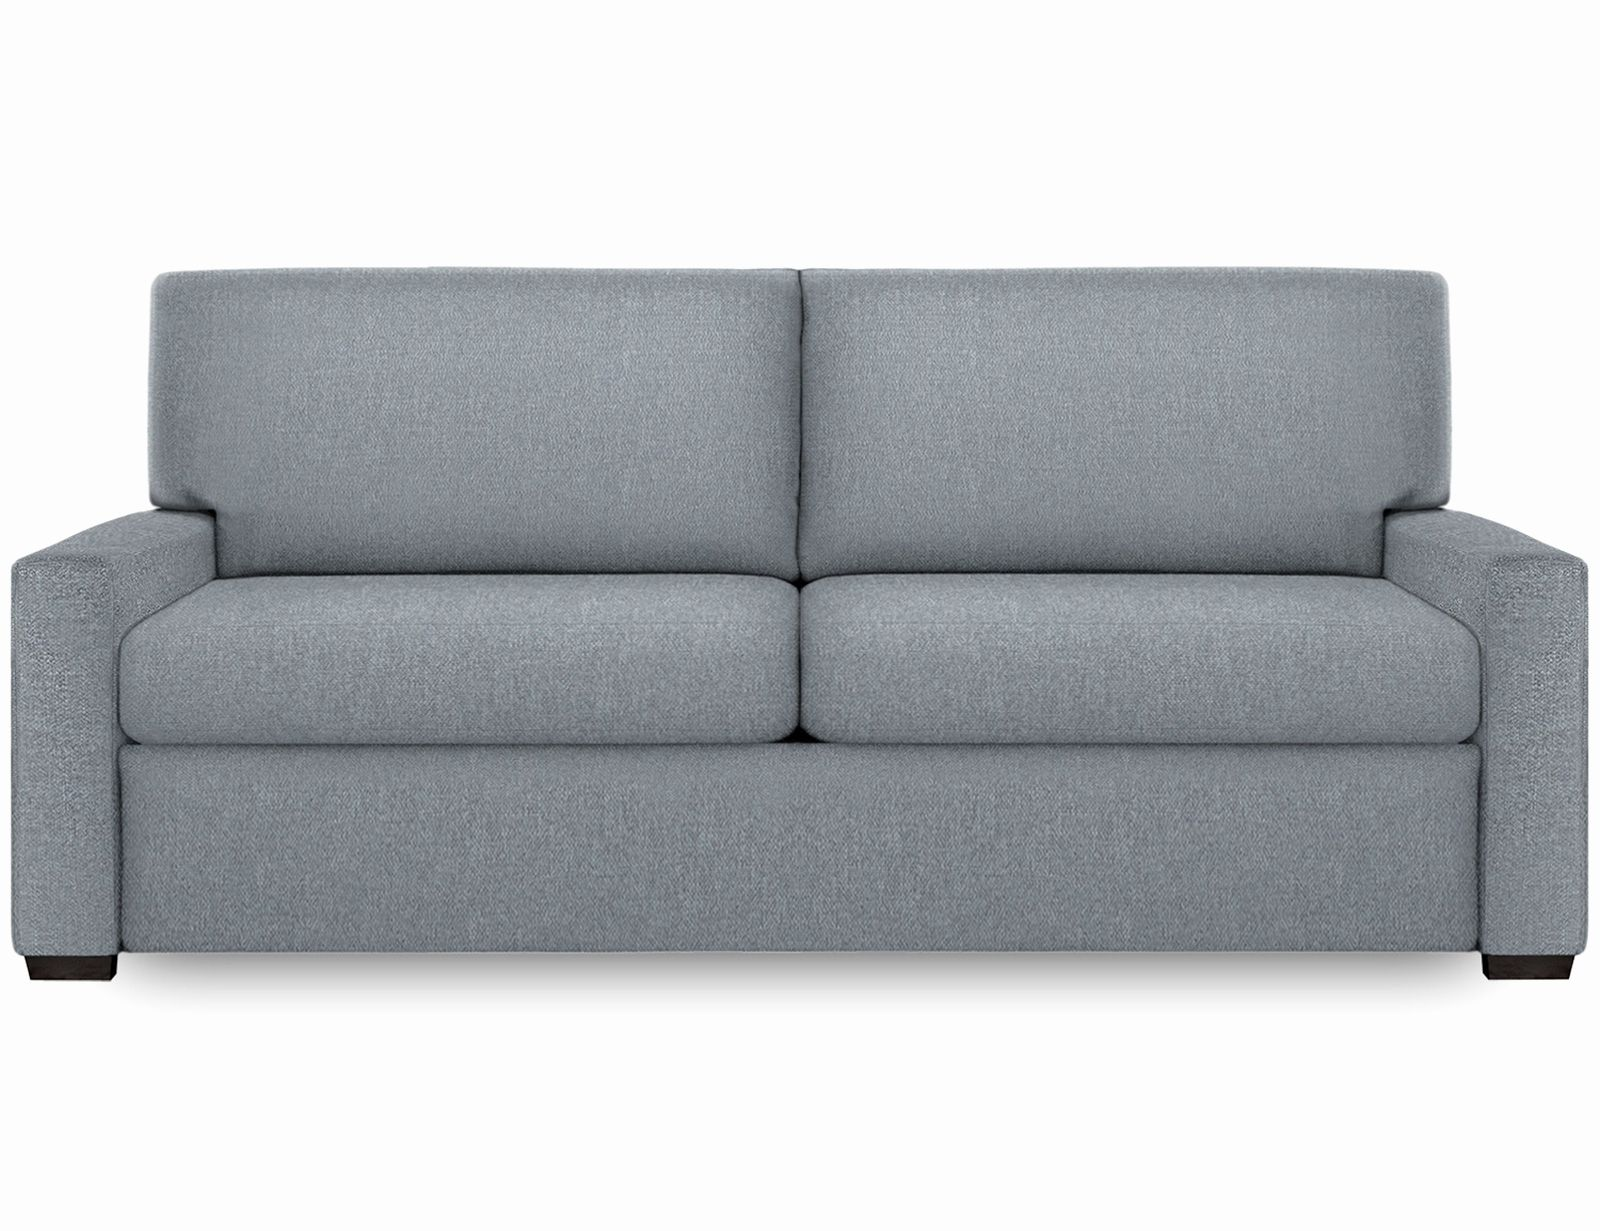 Inspirational Apartment therapy Sleeper sofa Picture